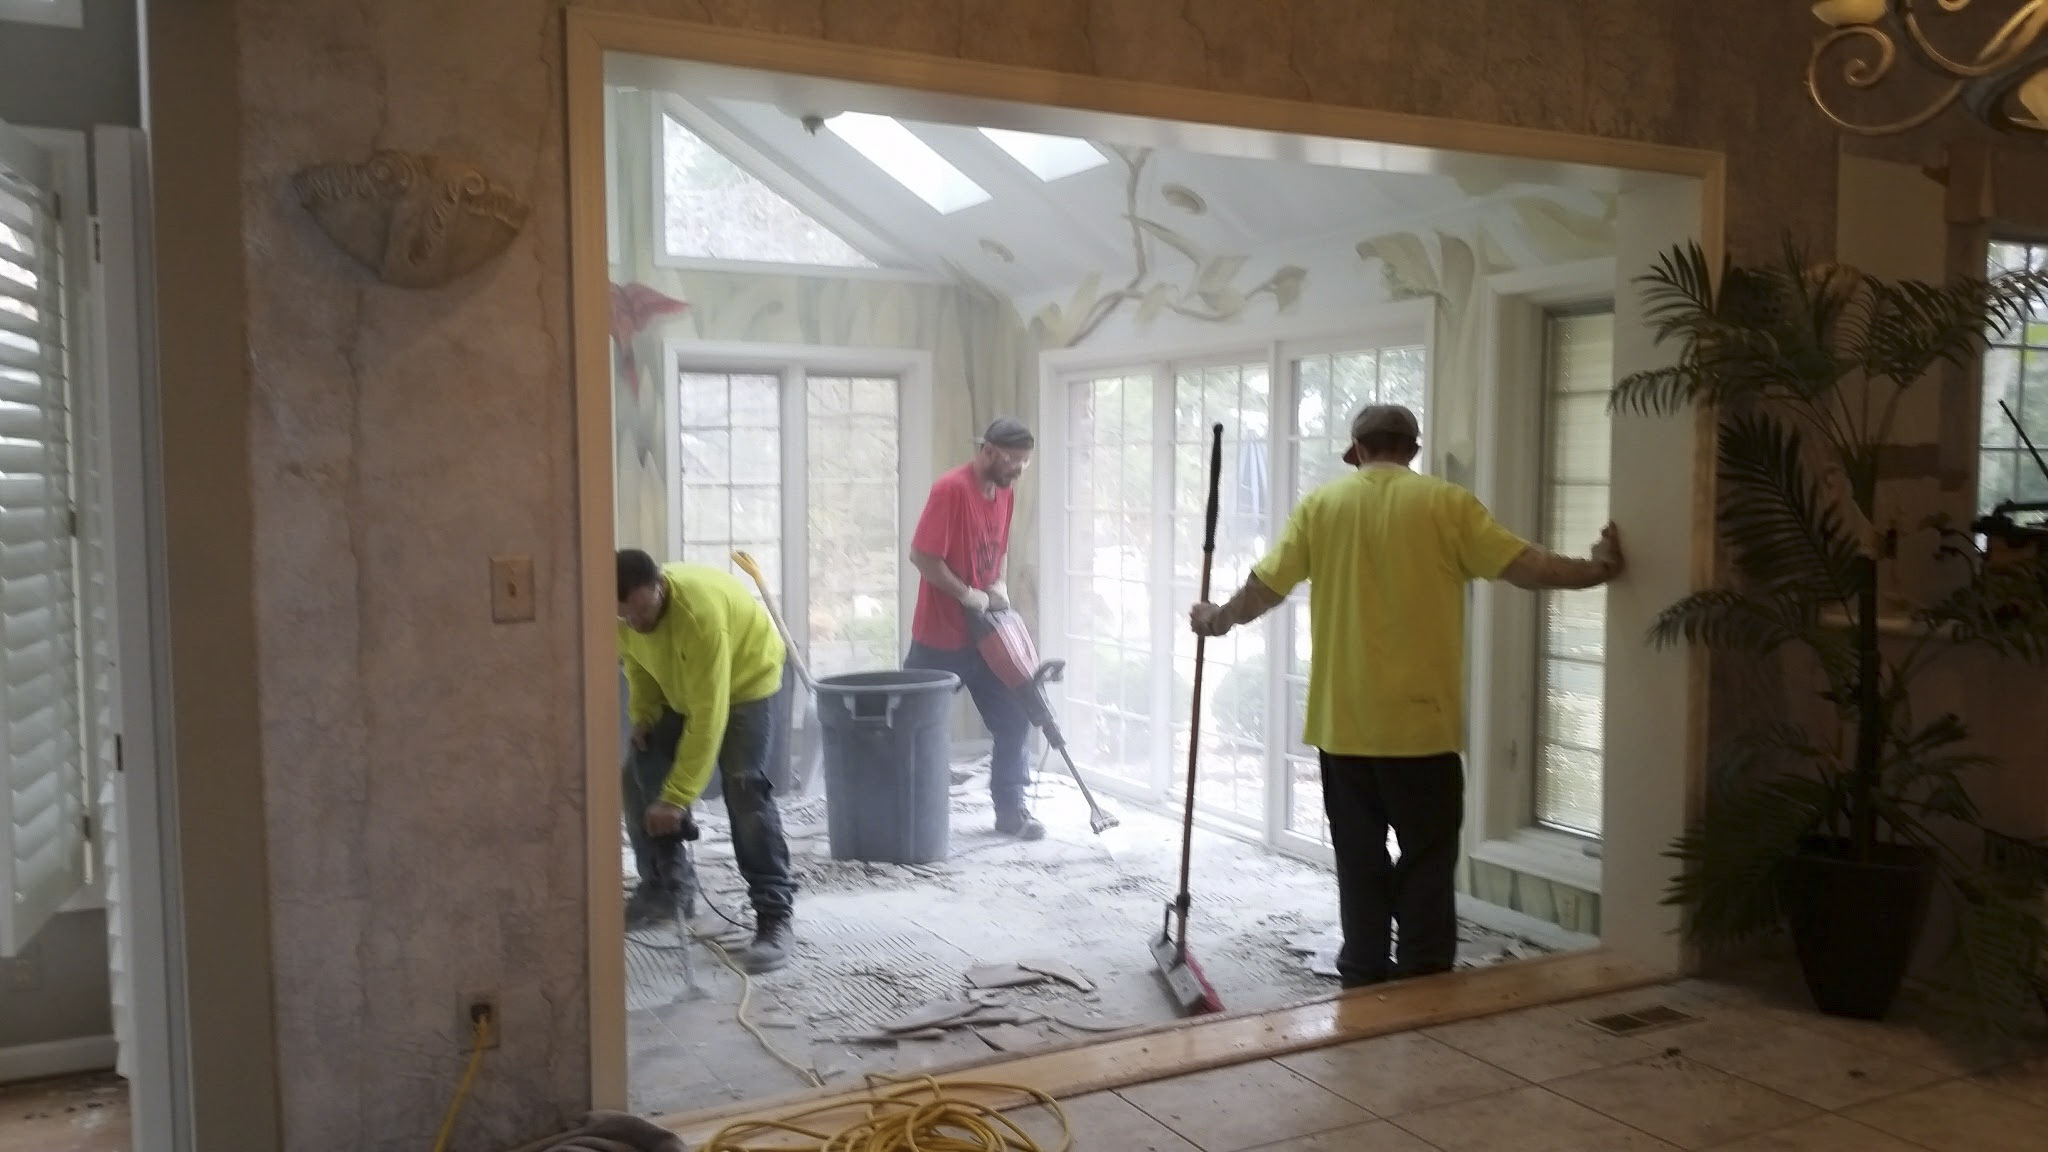 Mike's Hauling demo crew hard at work demoing the sunroom floor. Thanks for all your hard work!